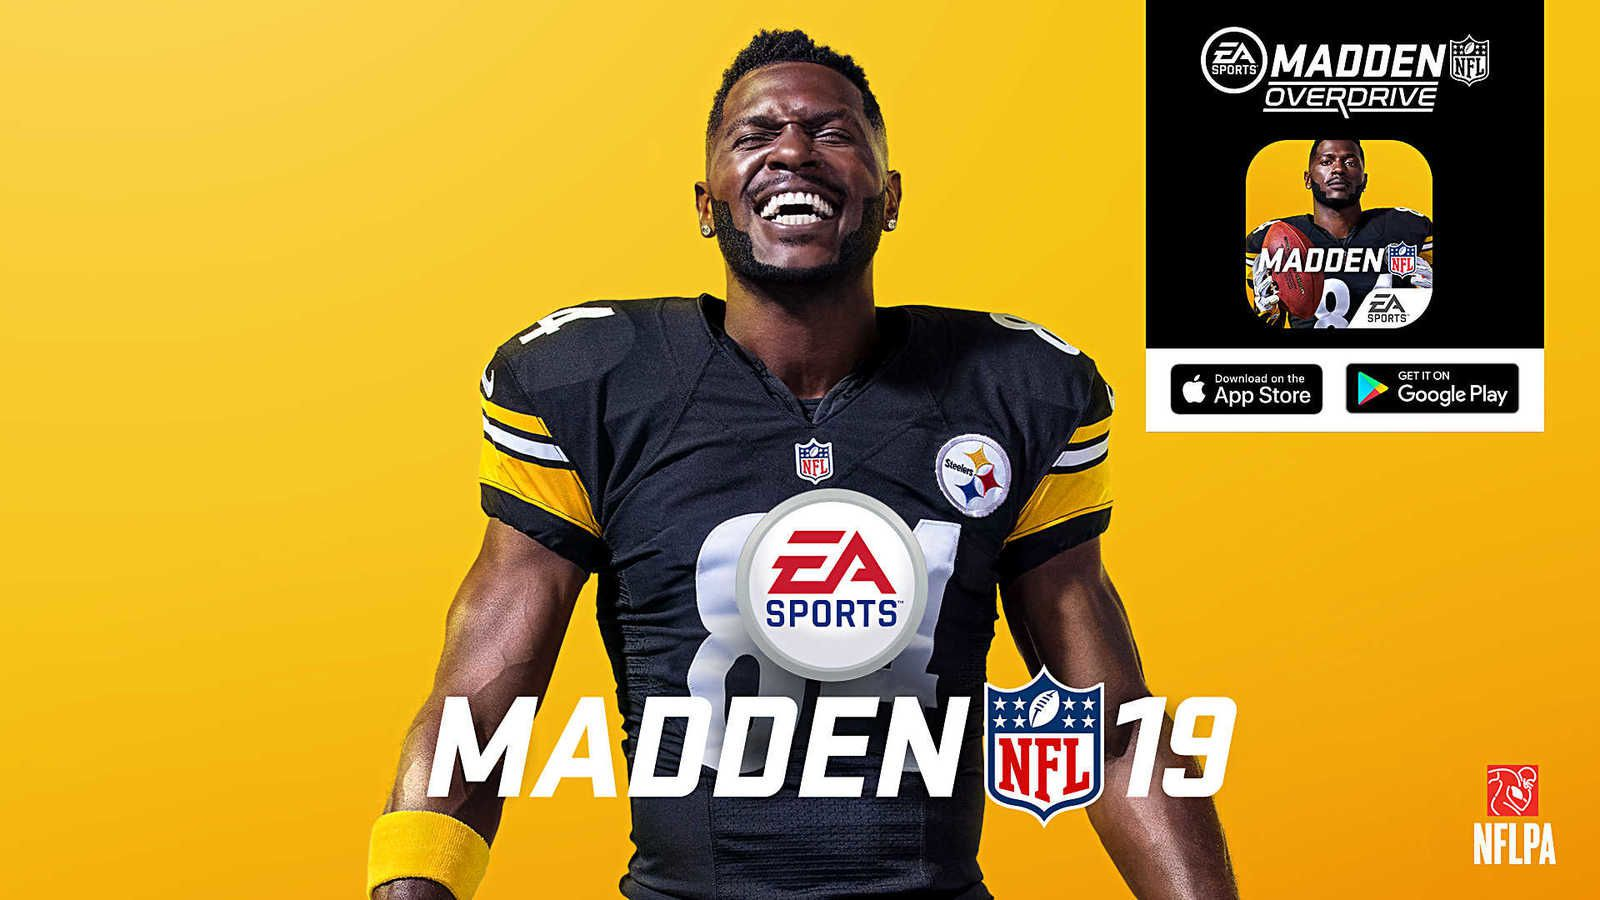 [TEST] MADDEN NFL 19 XBOX ONE X : un sport de contacts encore plus beau!